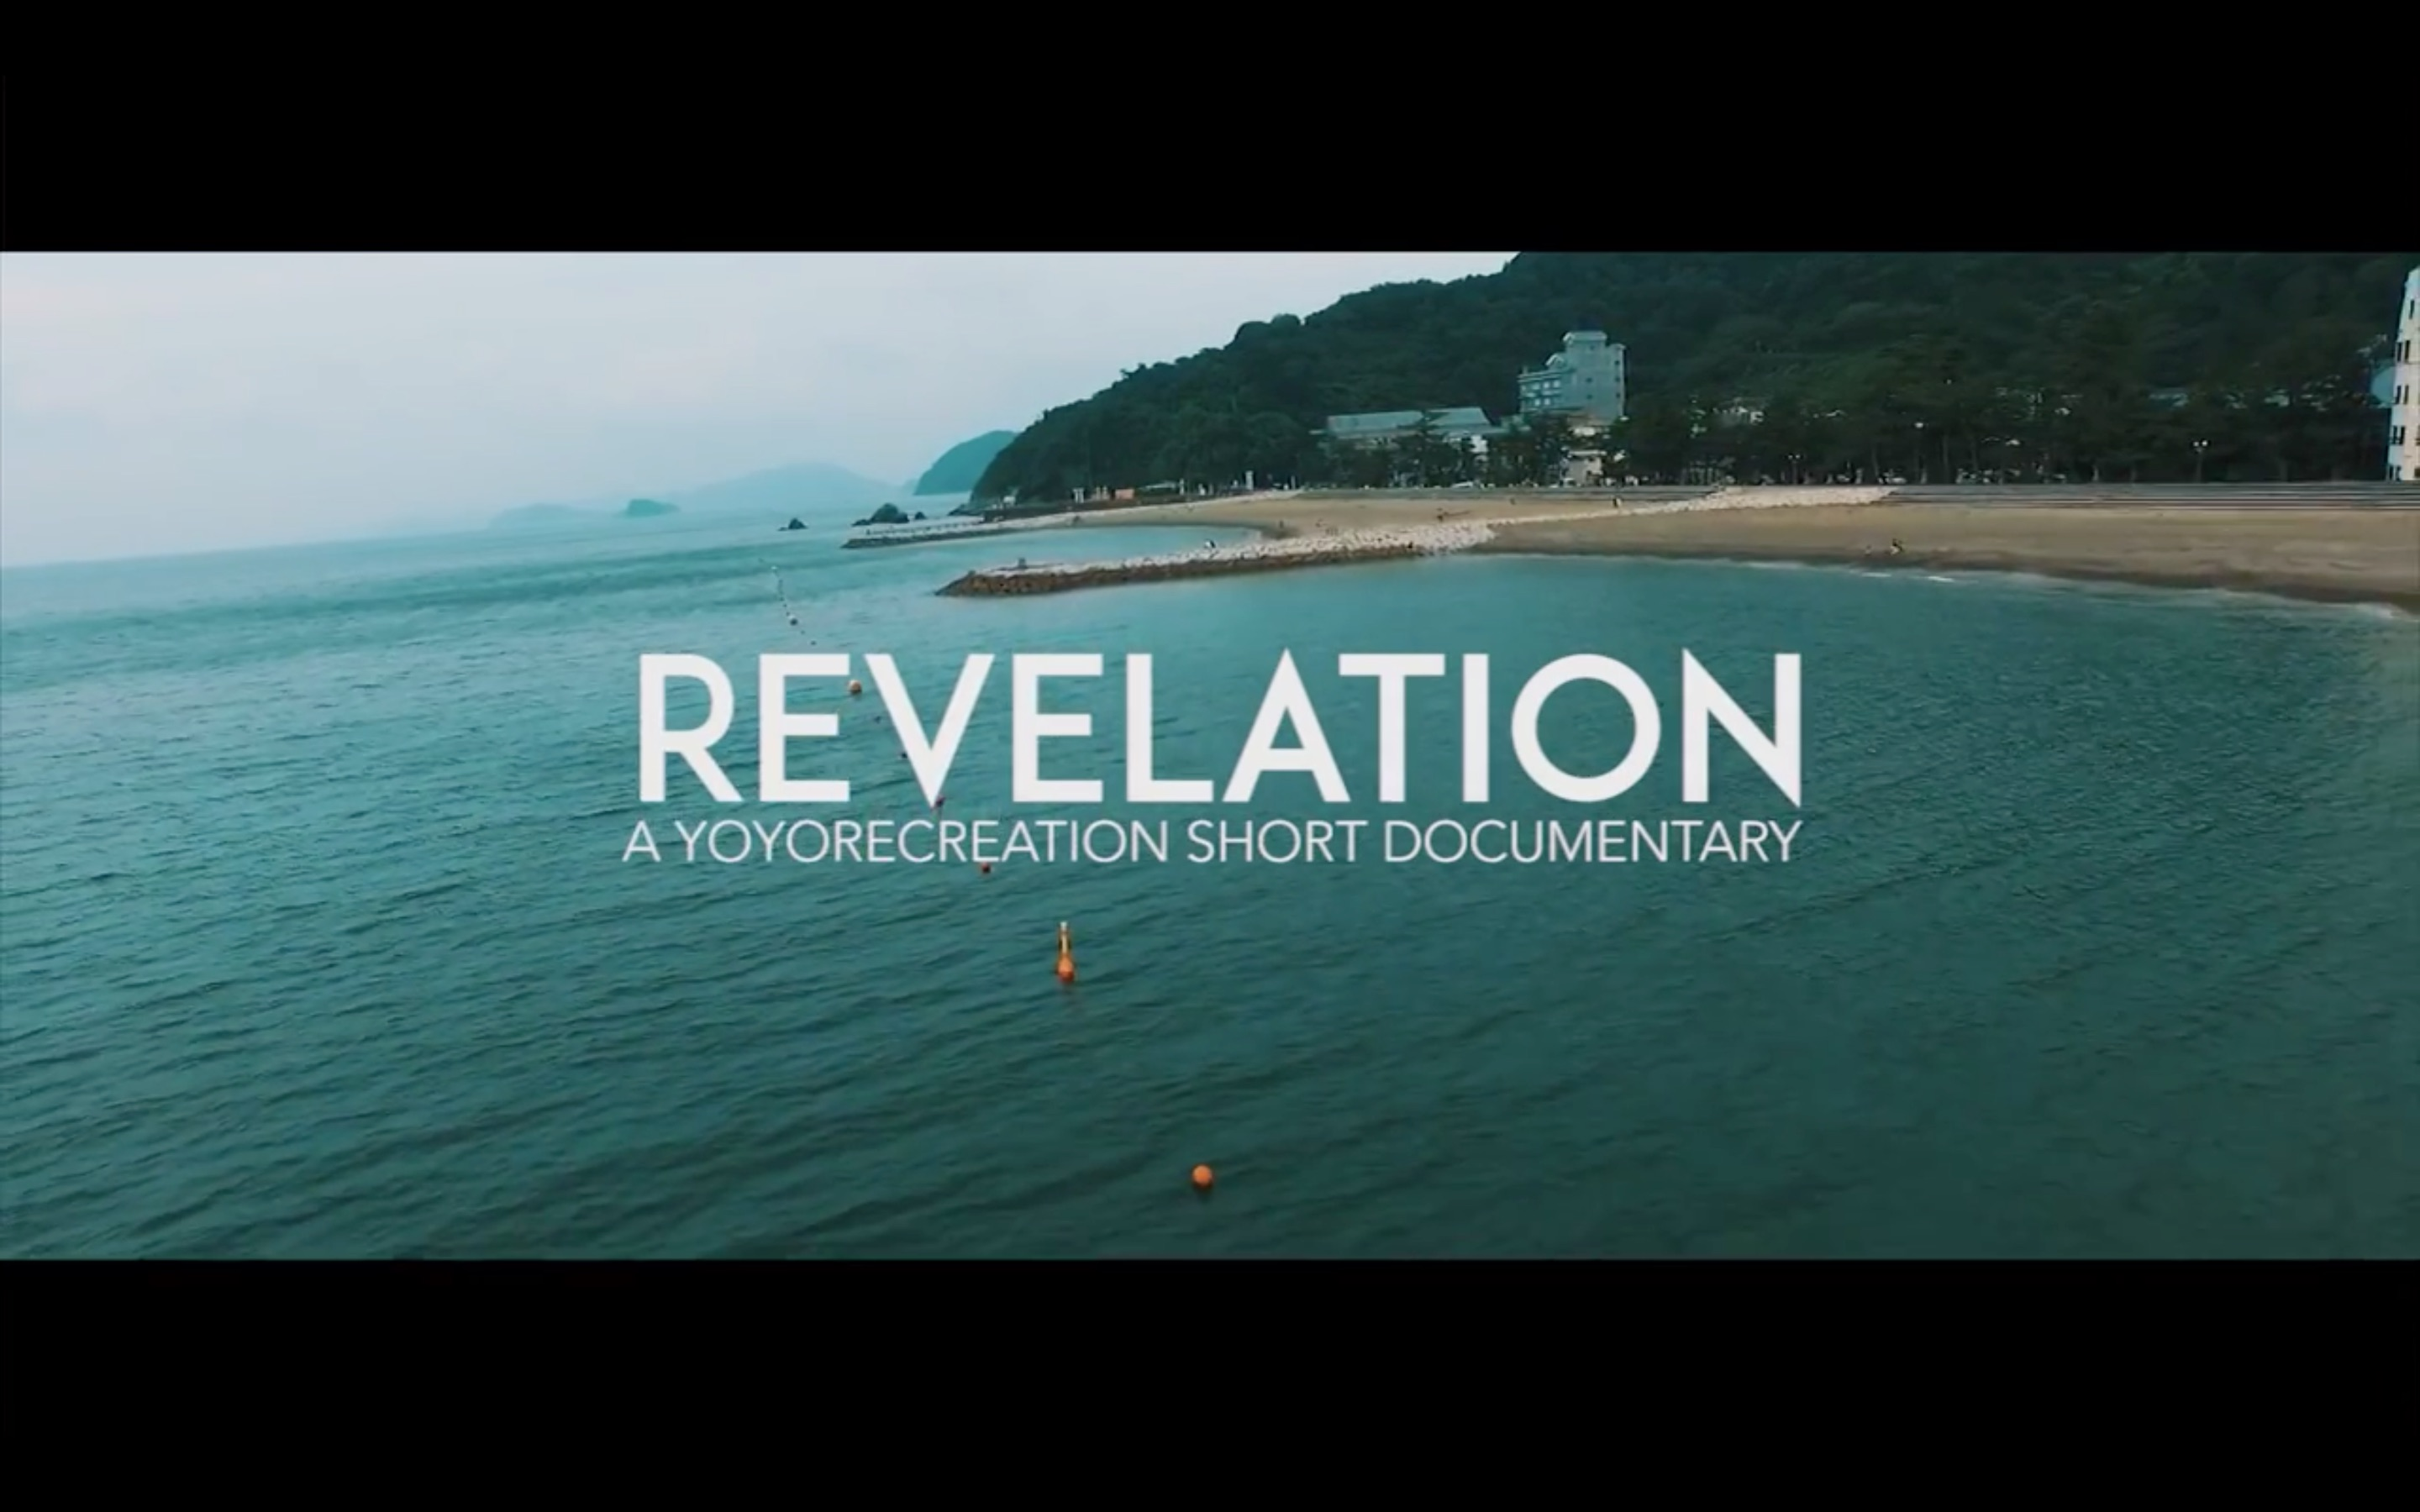 REVELATION - Yoyorecreation Short Documentary Trailer